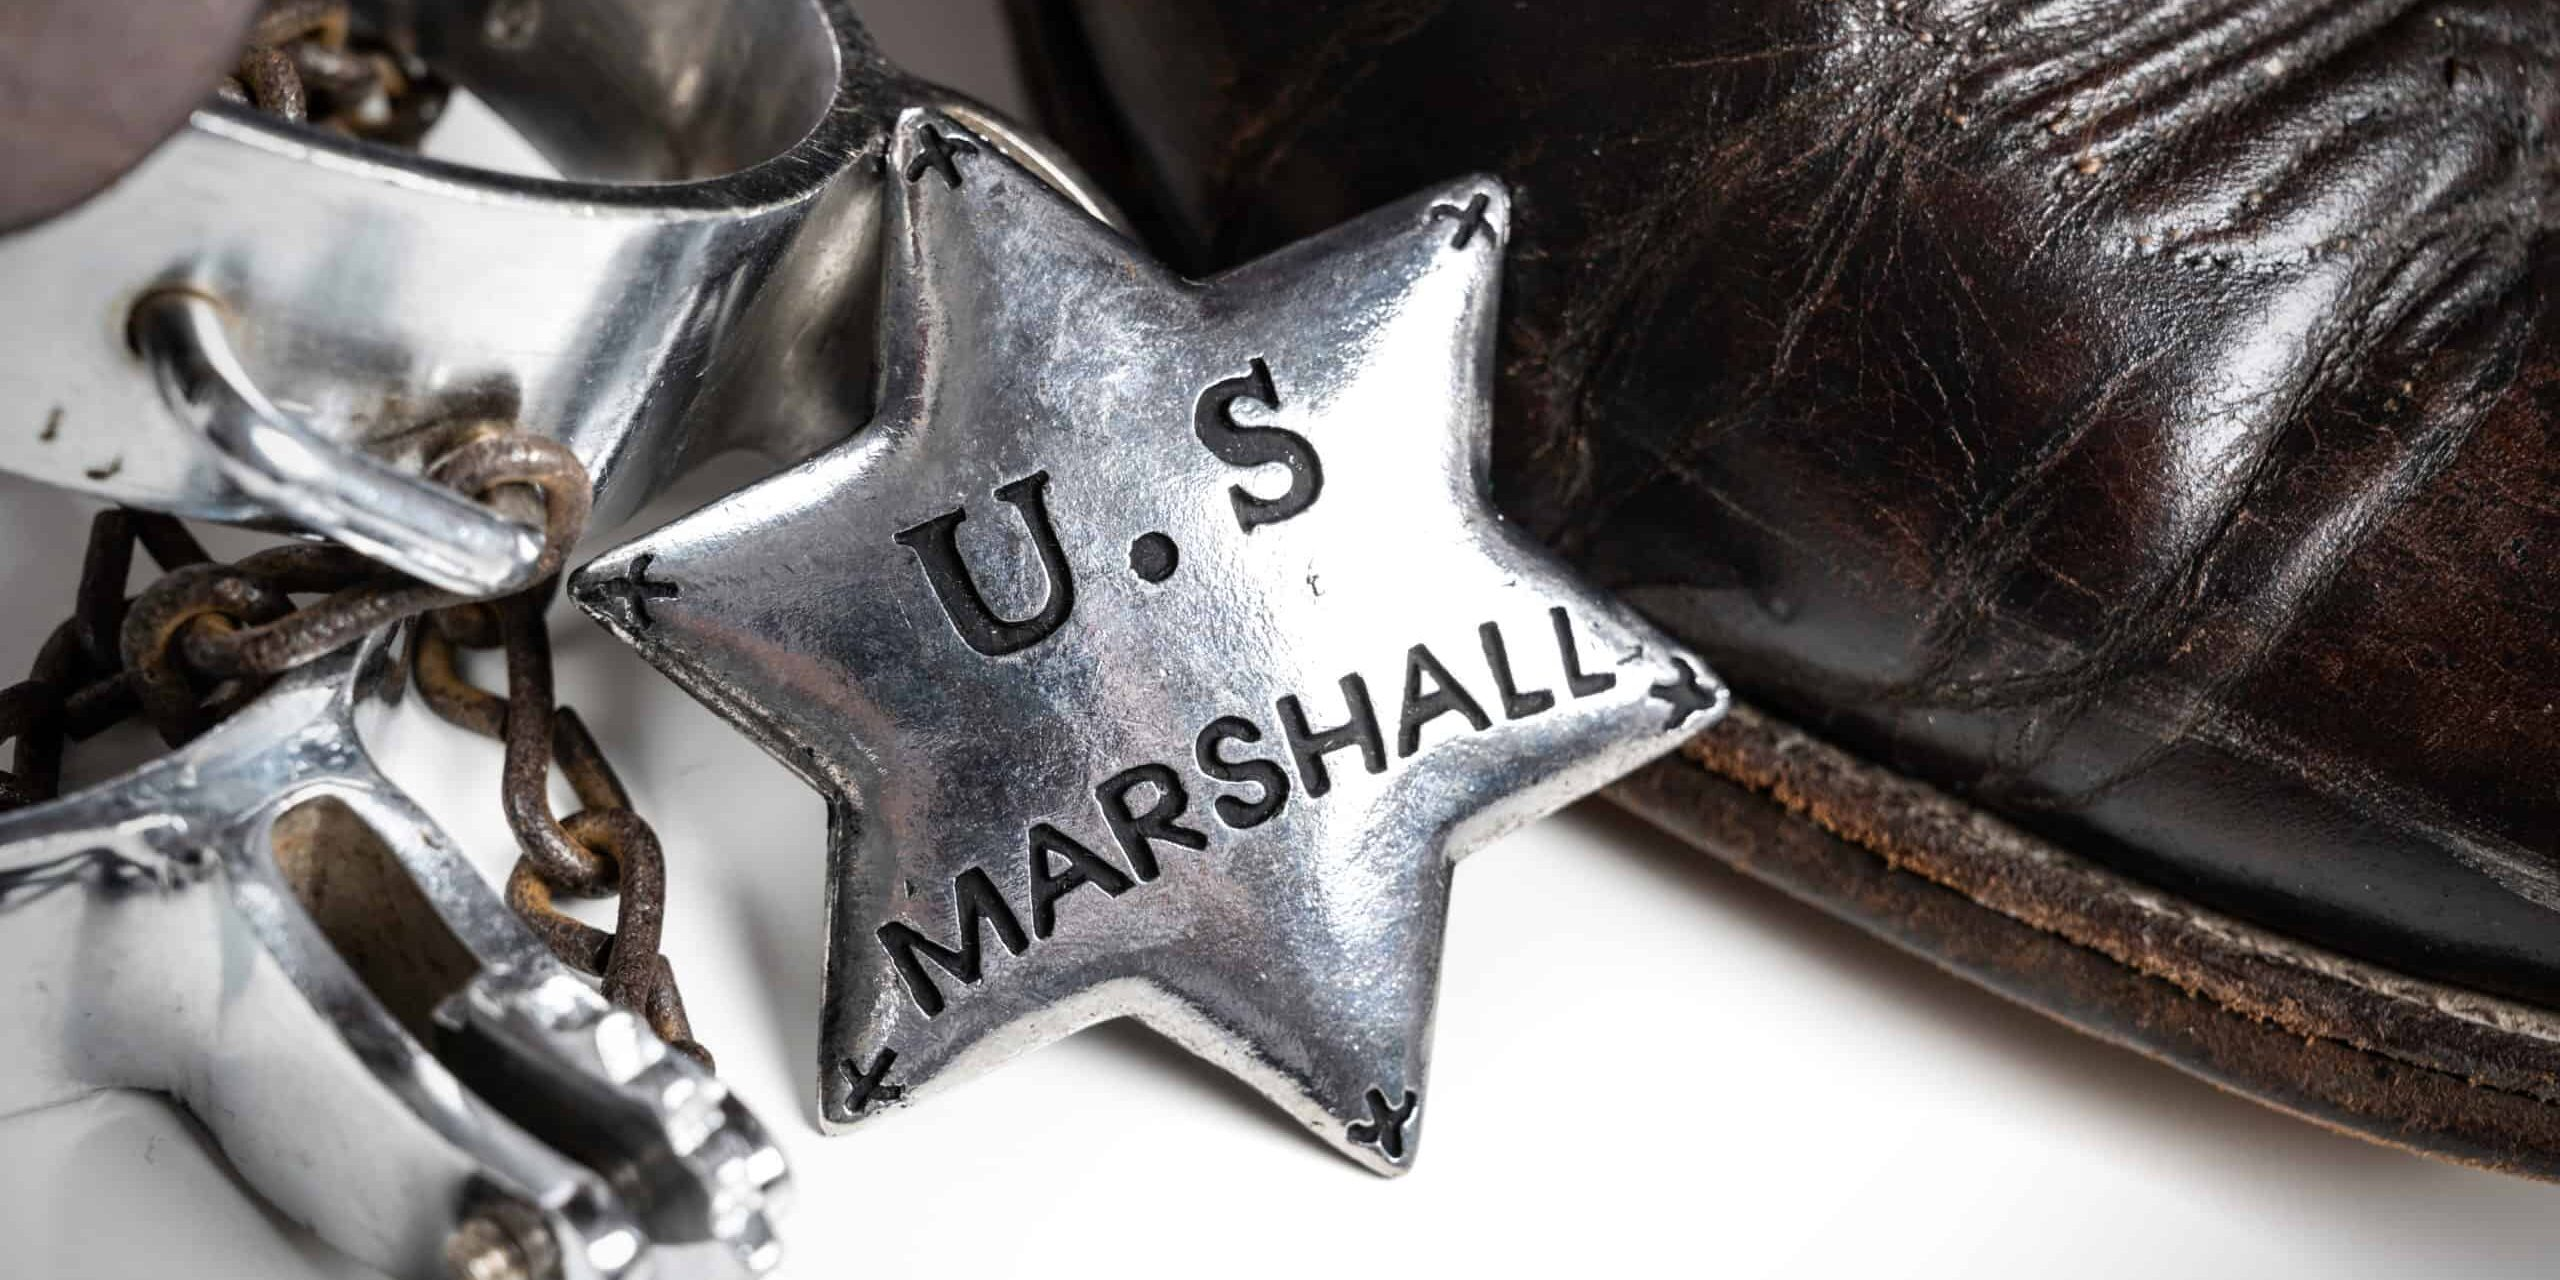 A group Of items old West themed items including United States Marshalls badge with cowboy boots and spurs